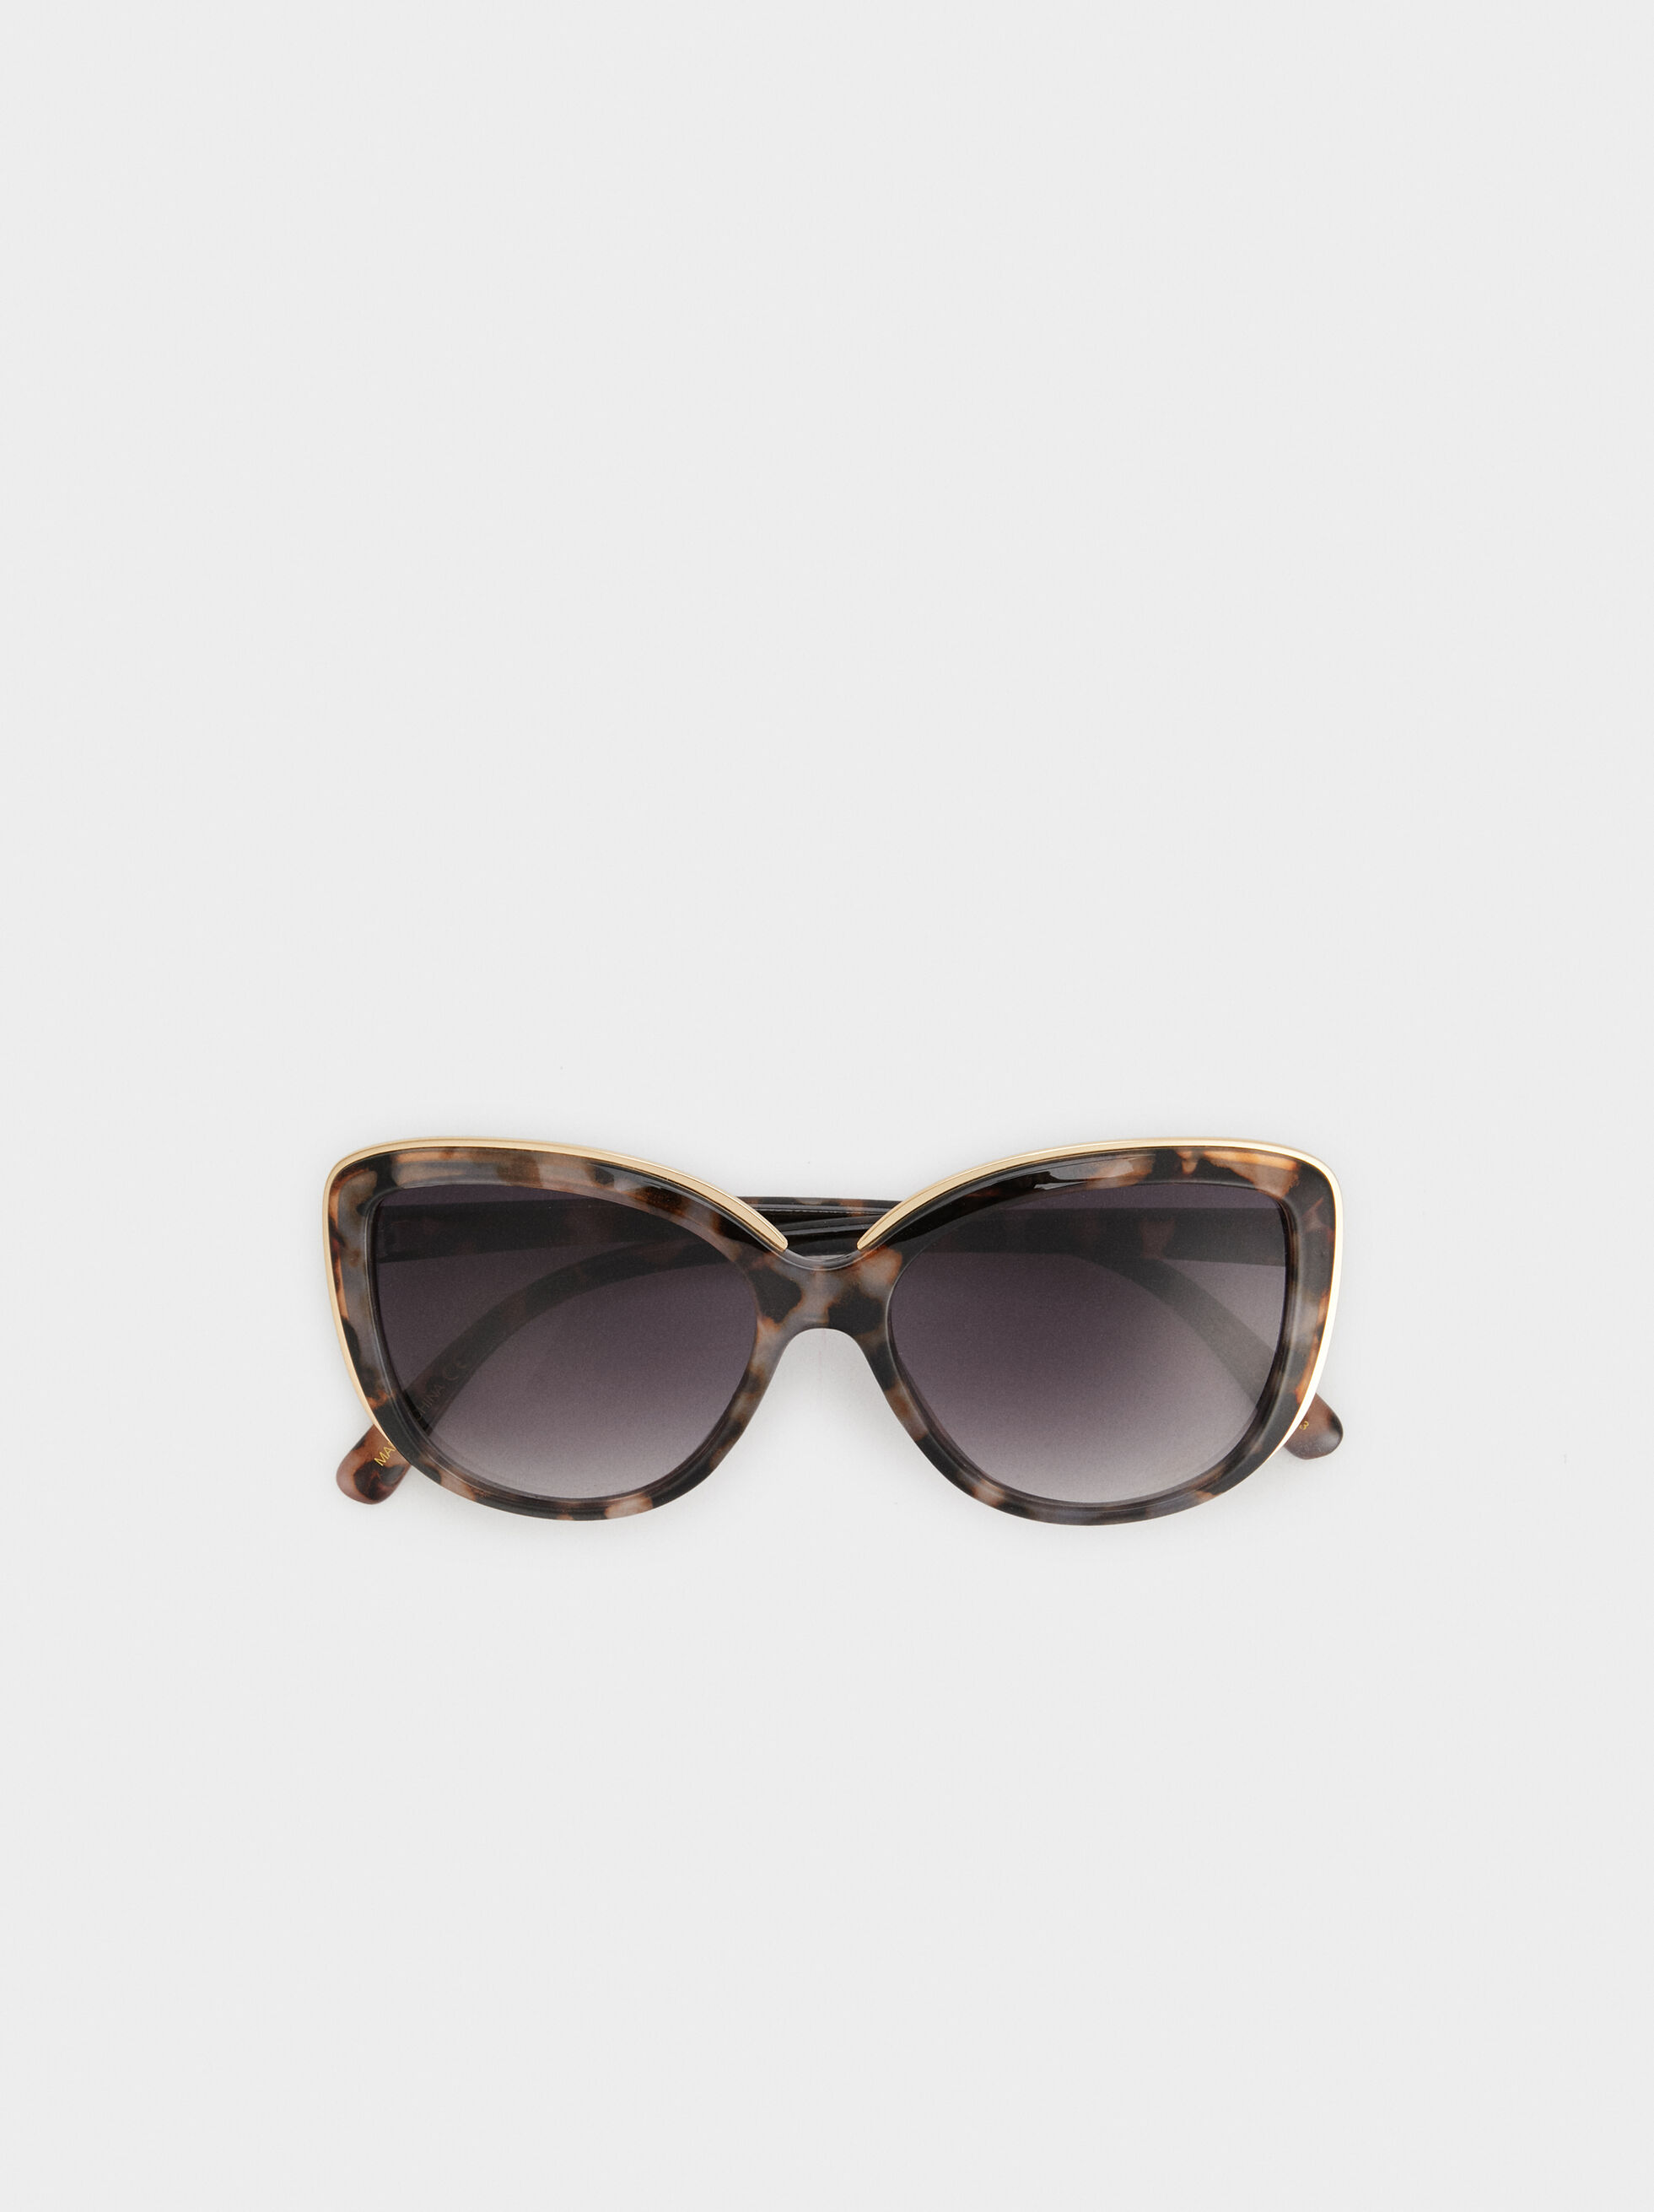 Tortoiseshell Sunglasses, Multicolor, hi-res